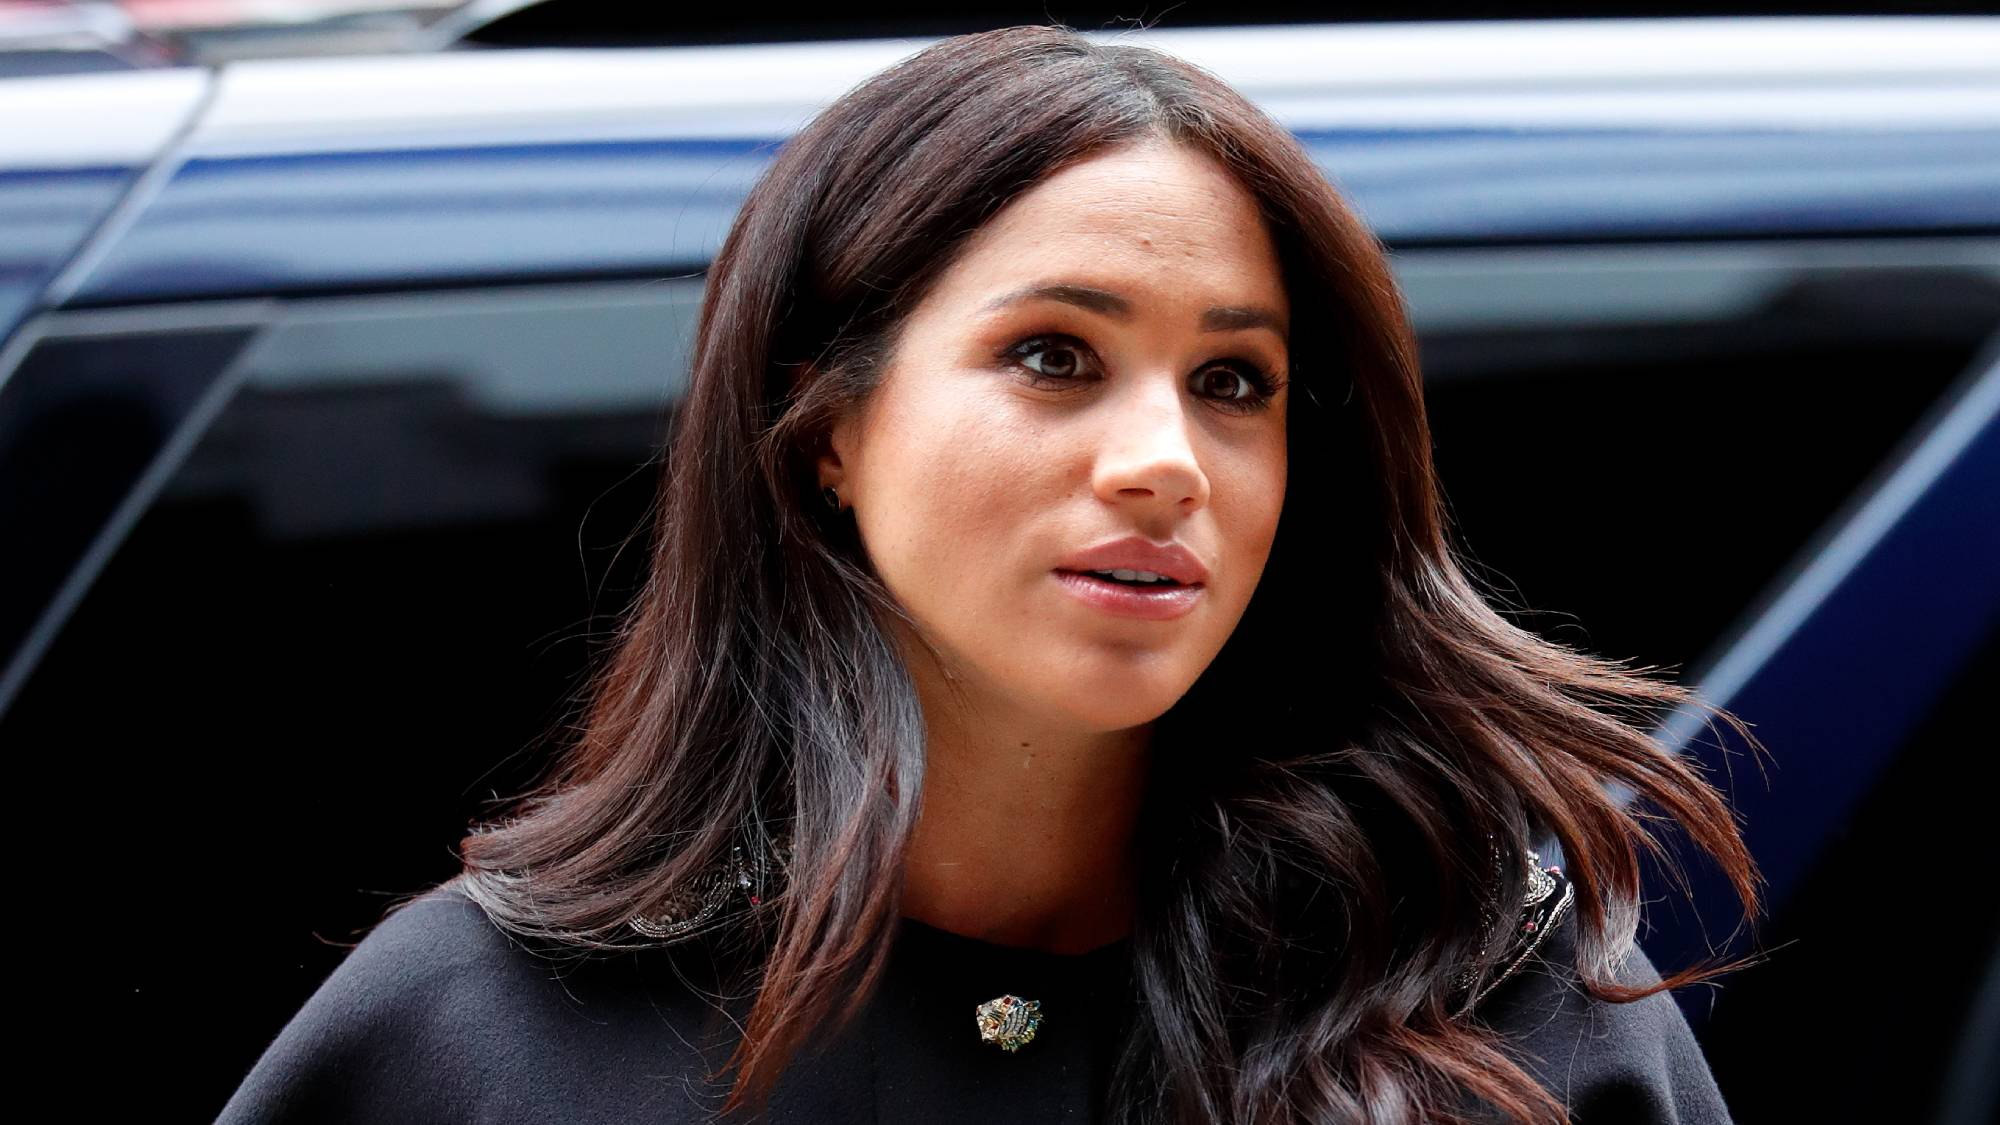 Meghan Markle says she's 'not okay' in an emotional new TV interview